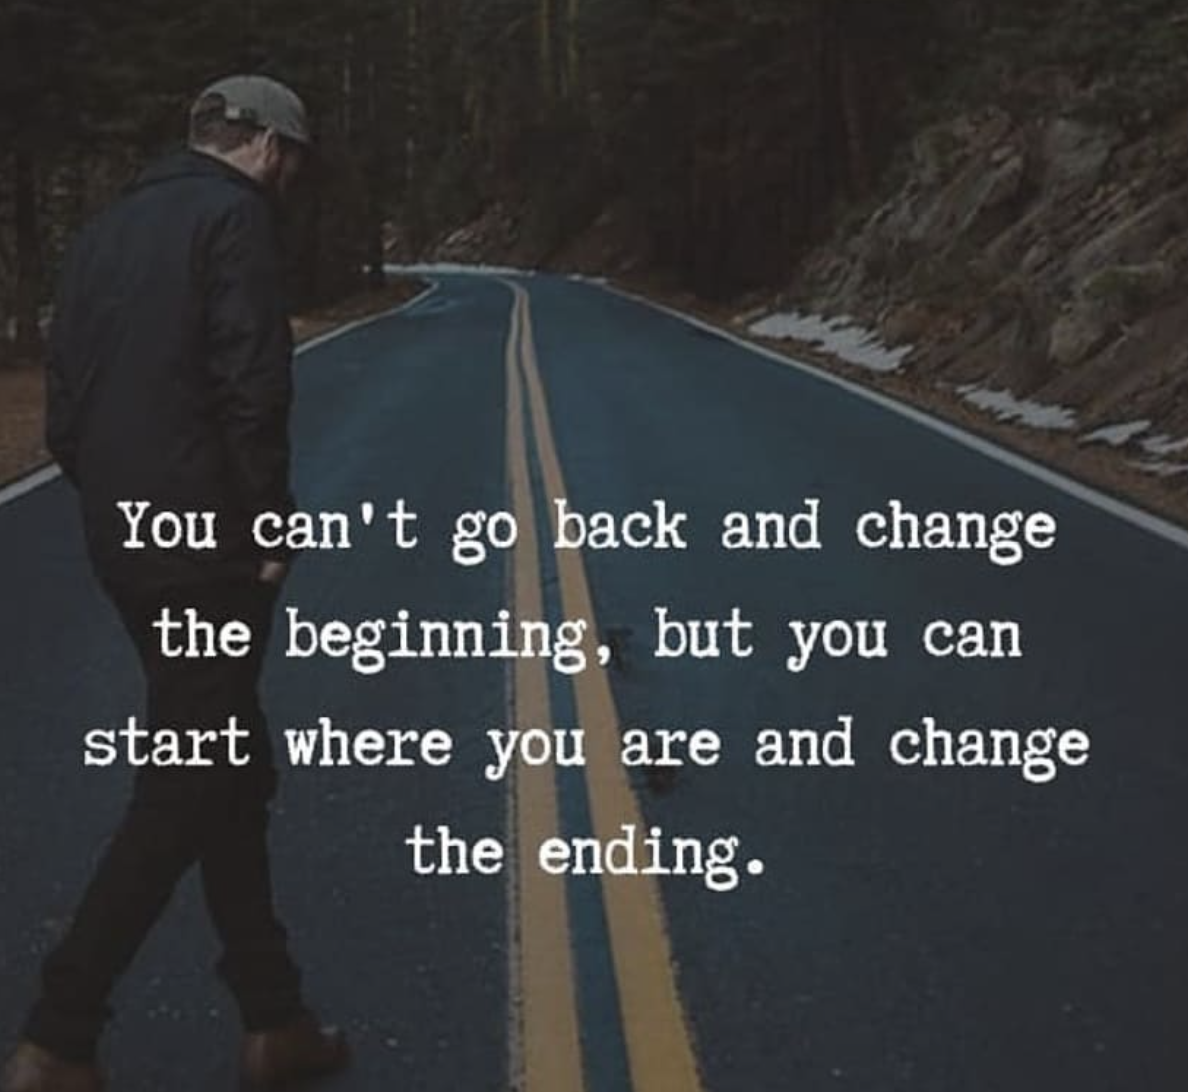 You can't go back and change the beginning; but you can start where you are and change the ending. https://inspirational.ly